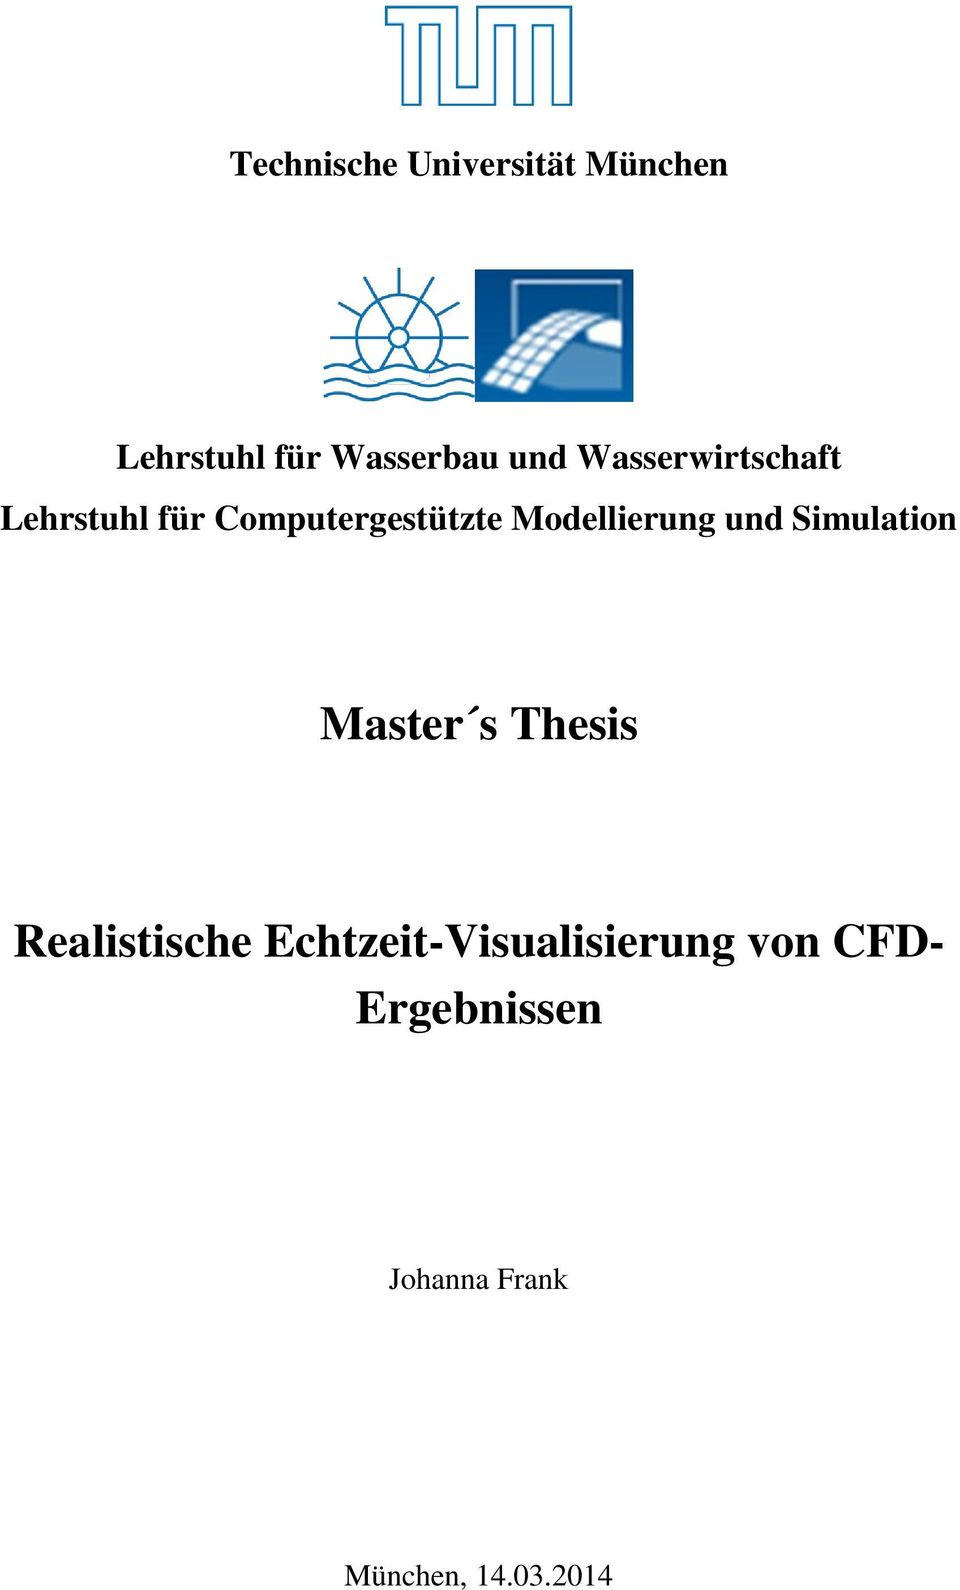 Masters CFD Thesis in Aerodynamics